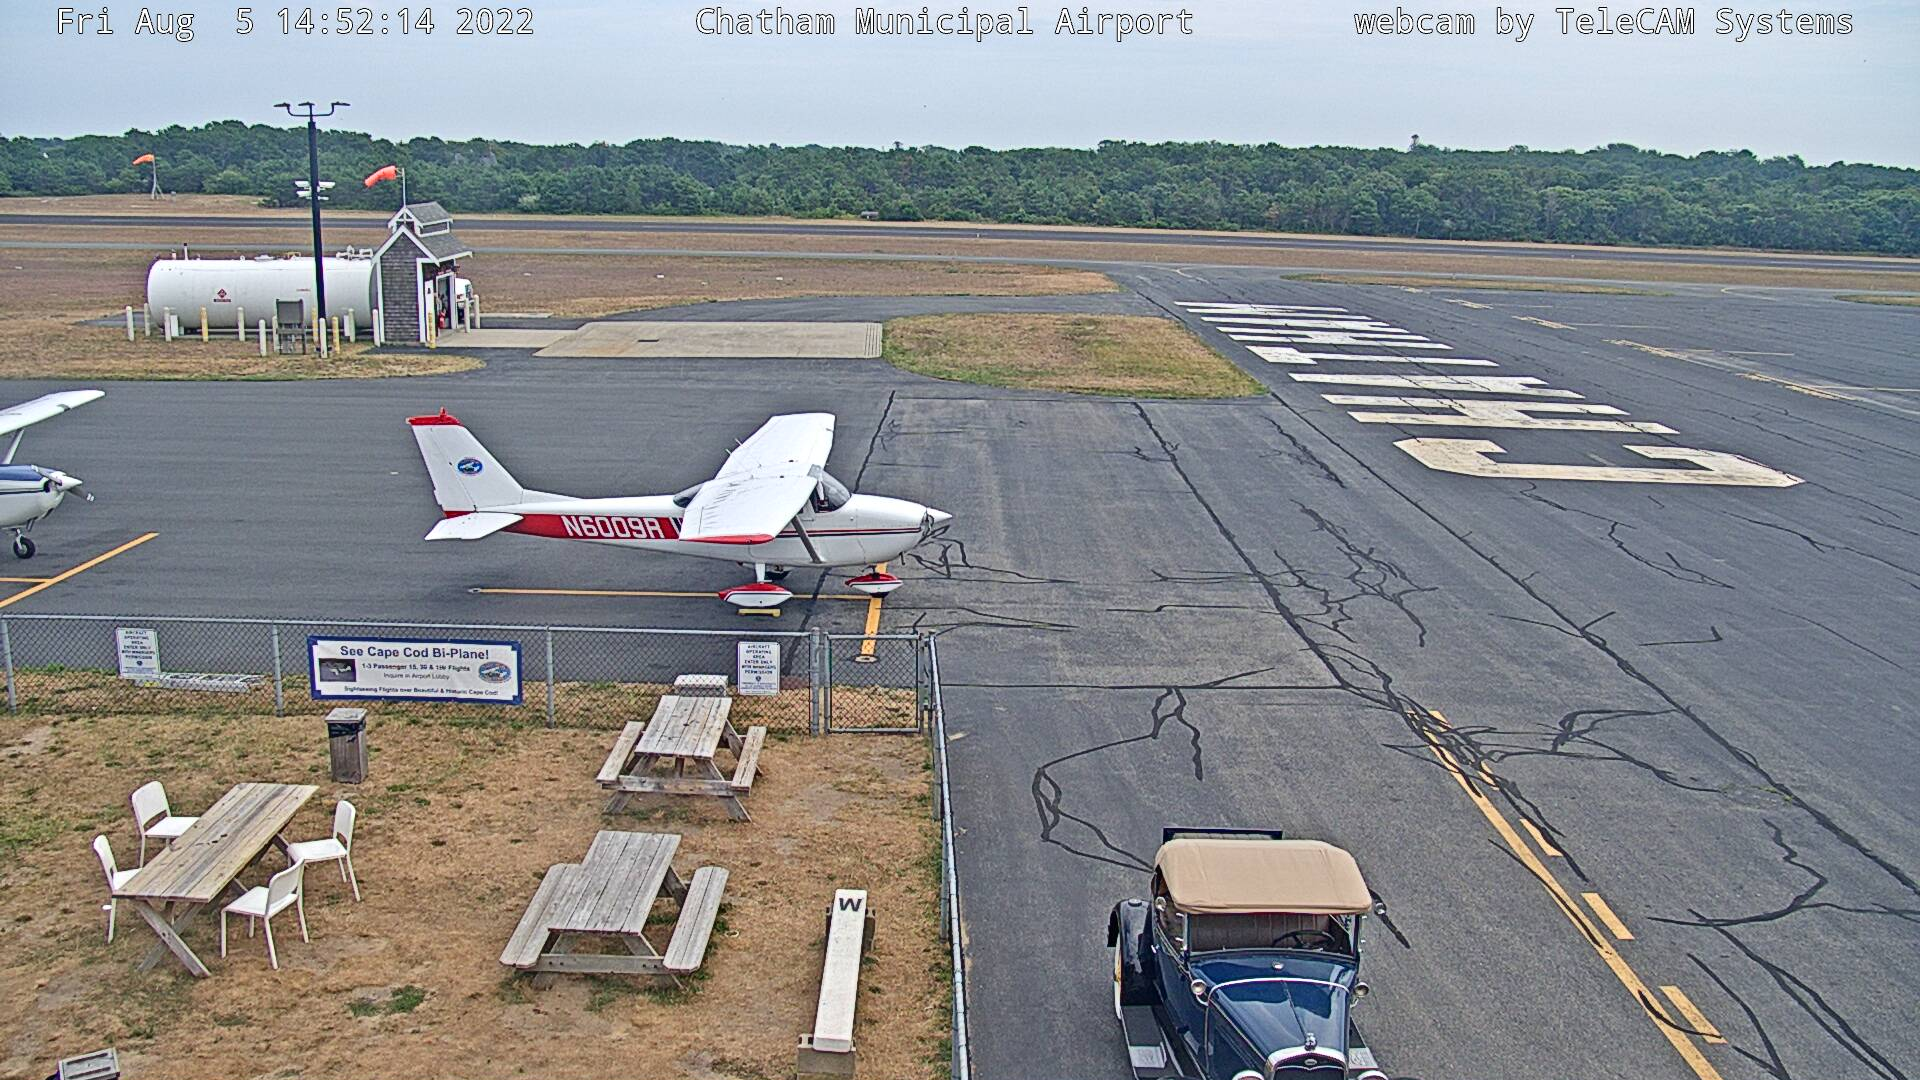 live chatham airport feed